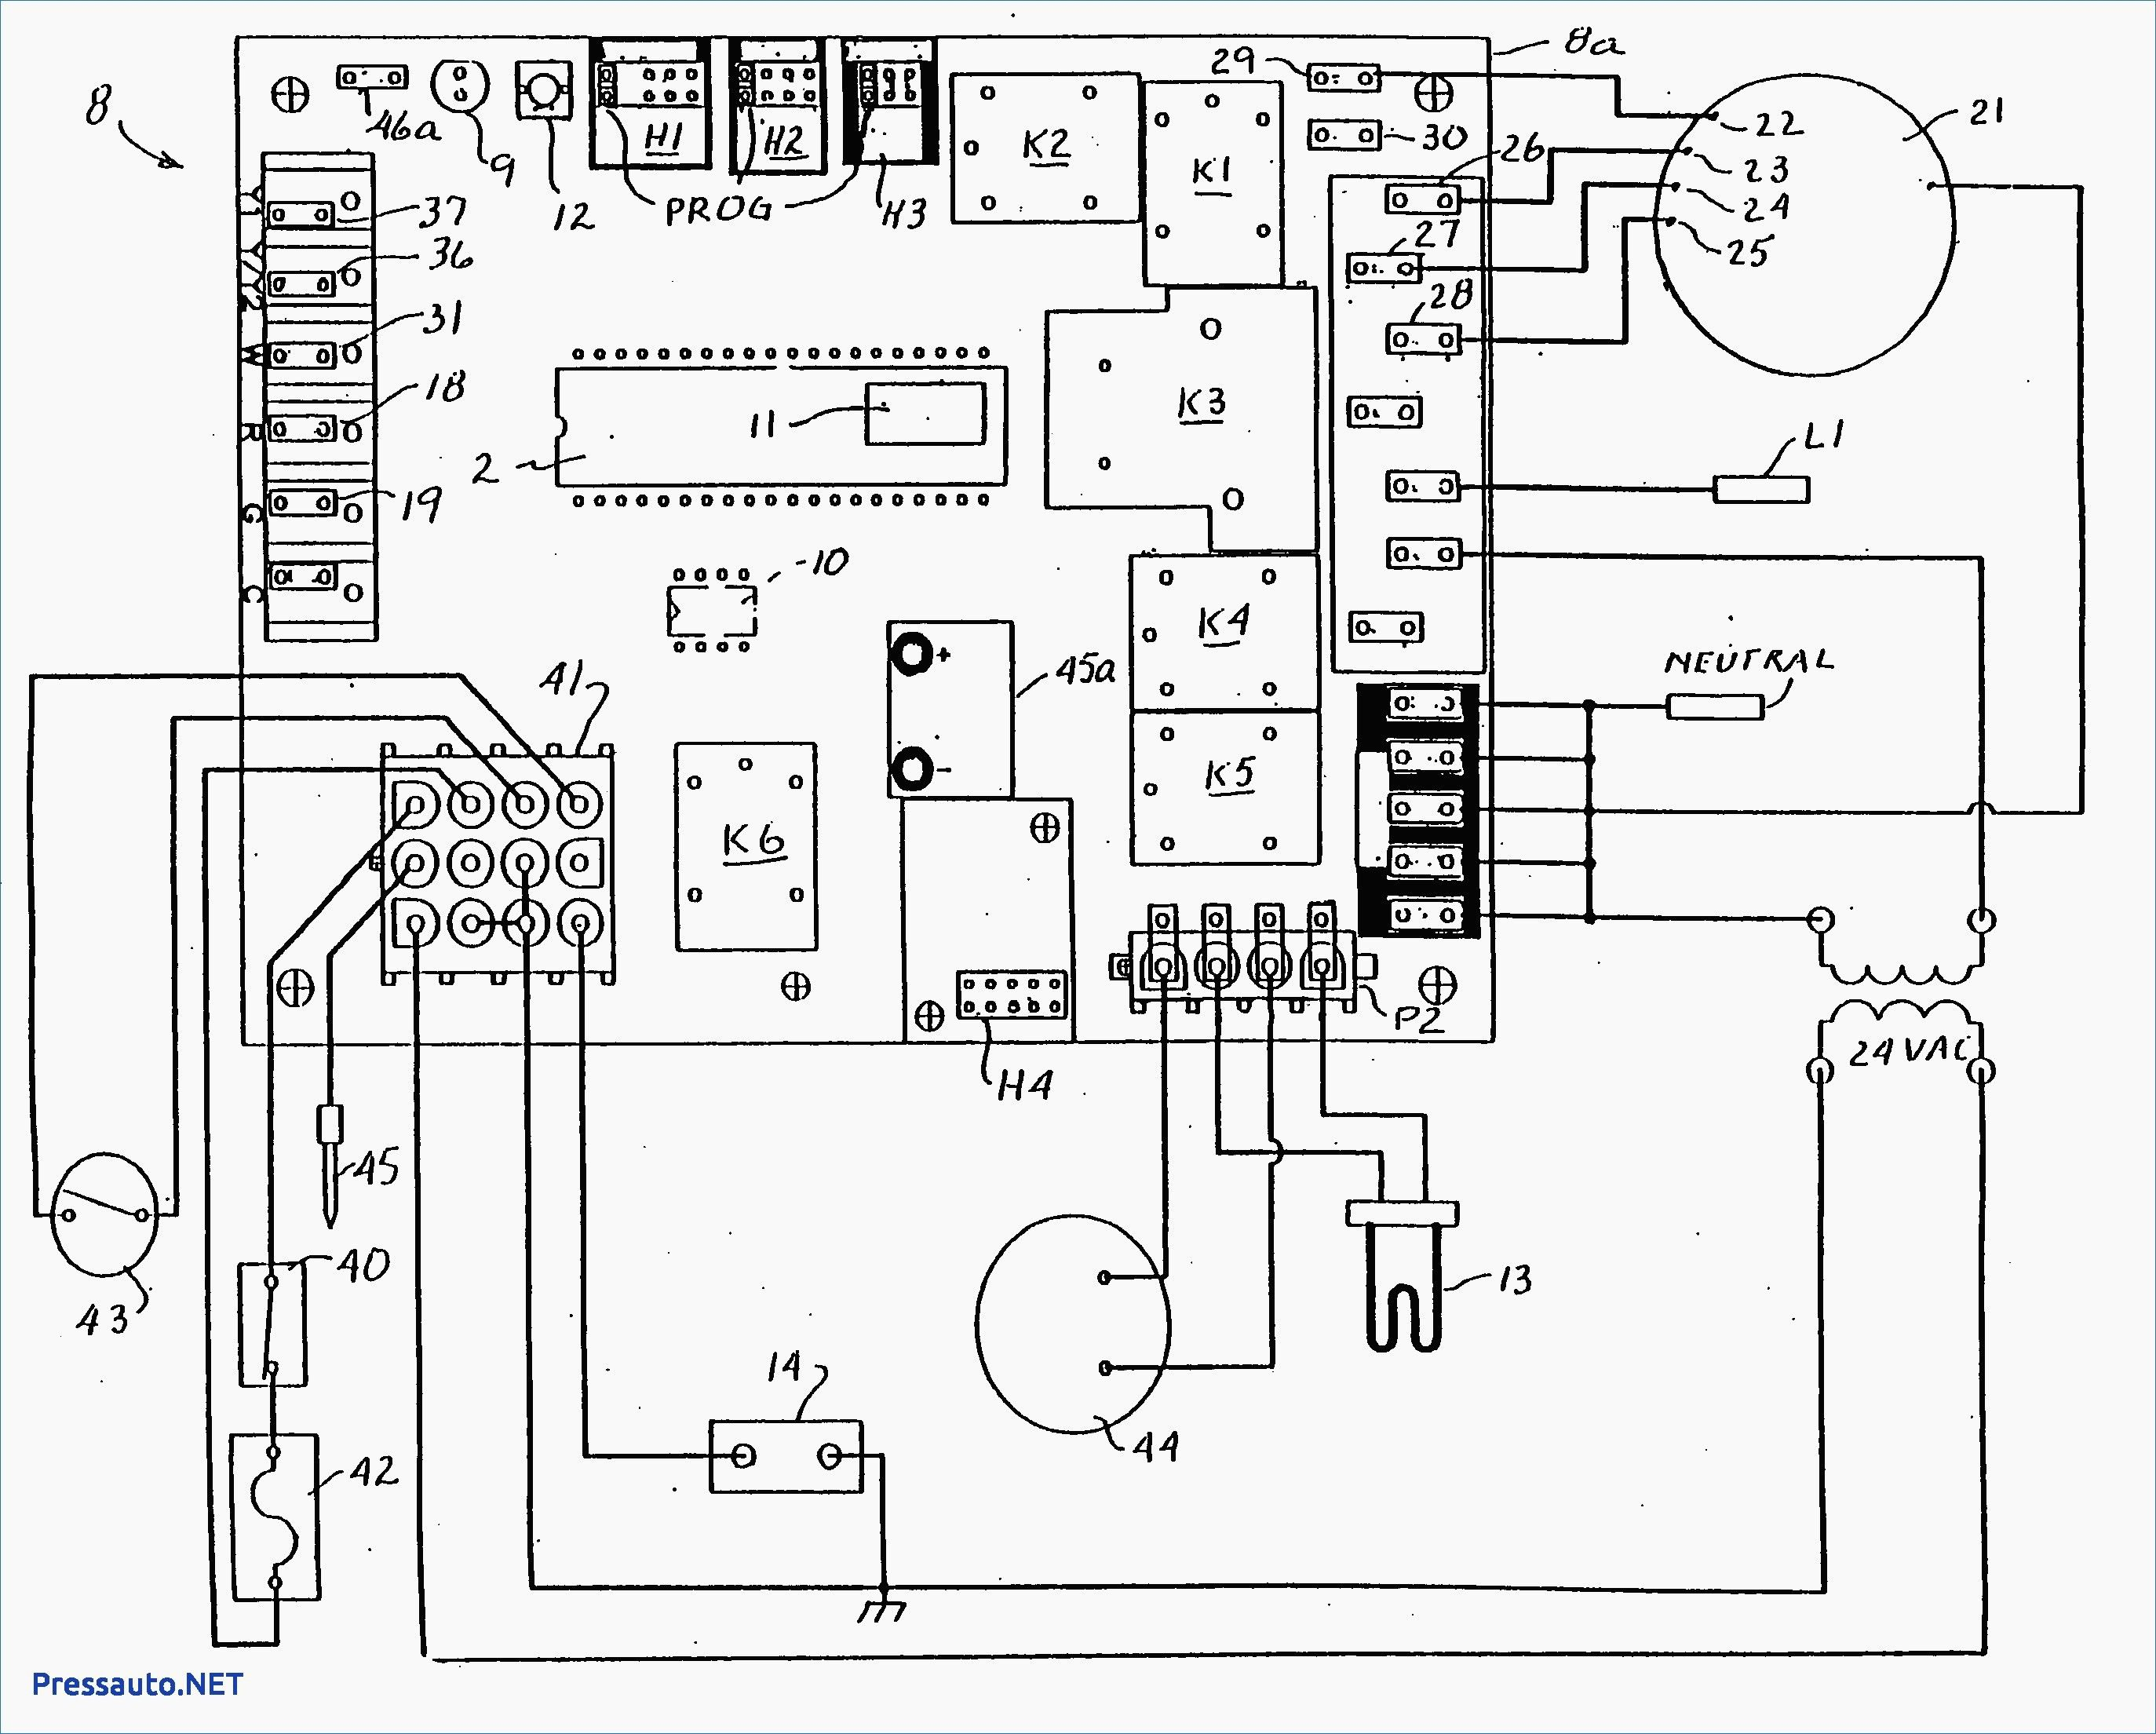 Unique Wiring Diagram for American Standard Gas Furnace #diagram  #diagramsample #diagramtemplate #wiringdiagram #diagramchart #work… |  Diagram, Gas furnace, FurnacePinterest